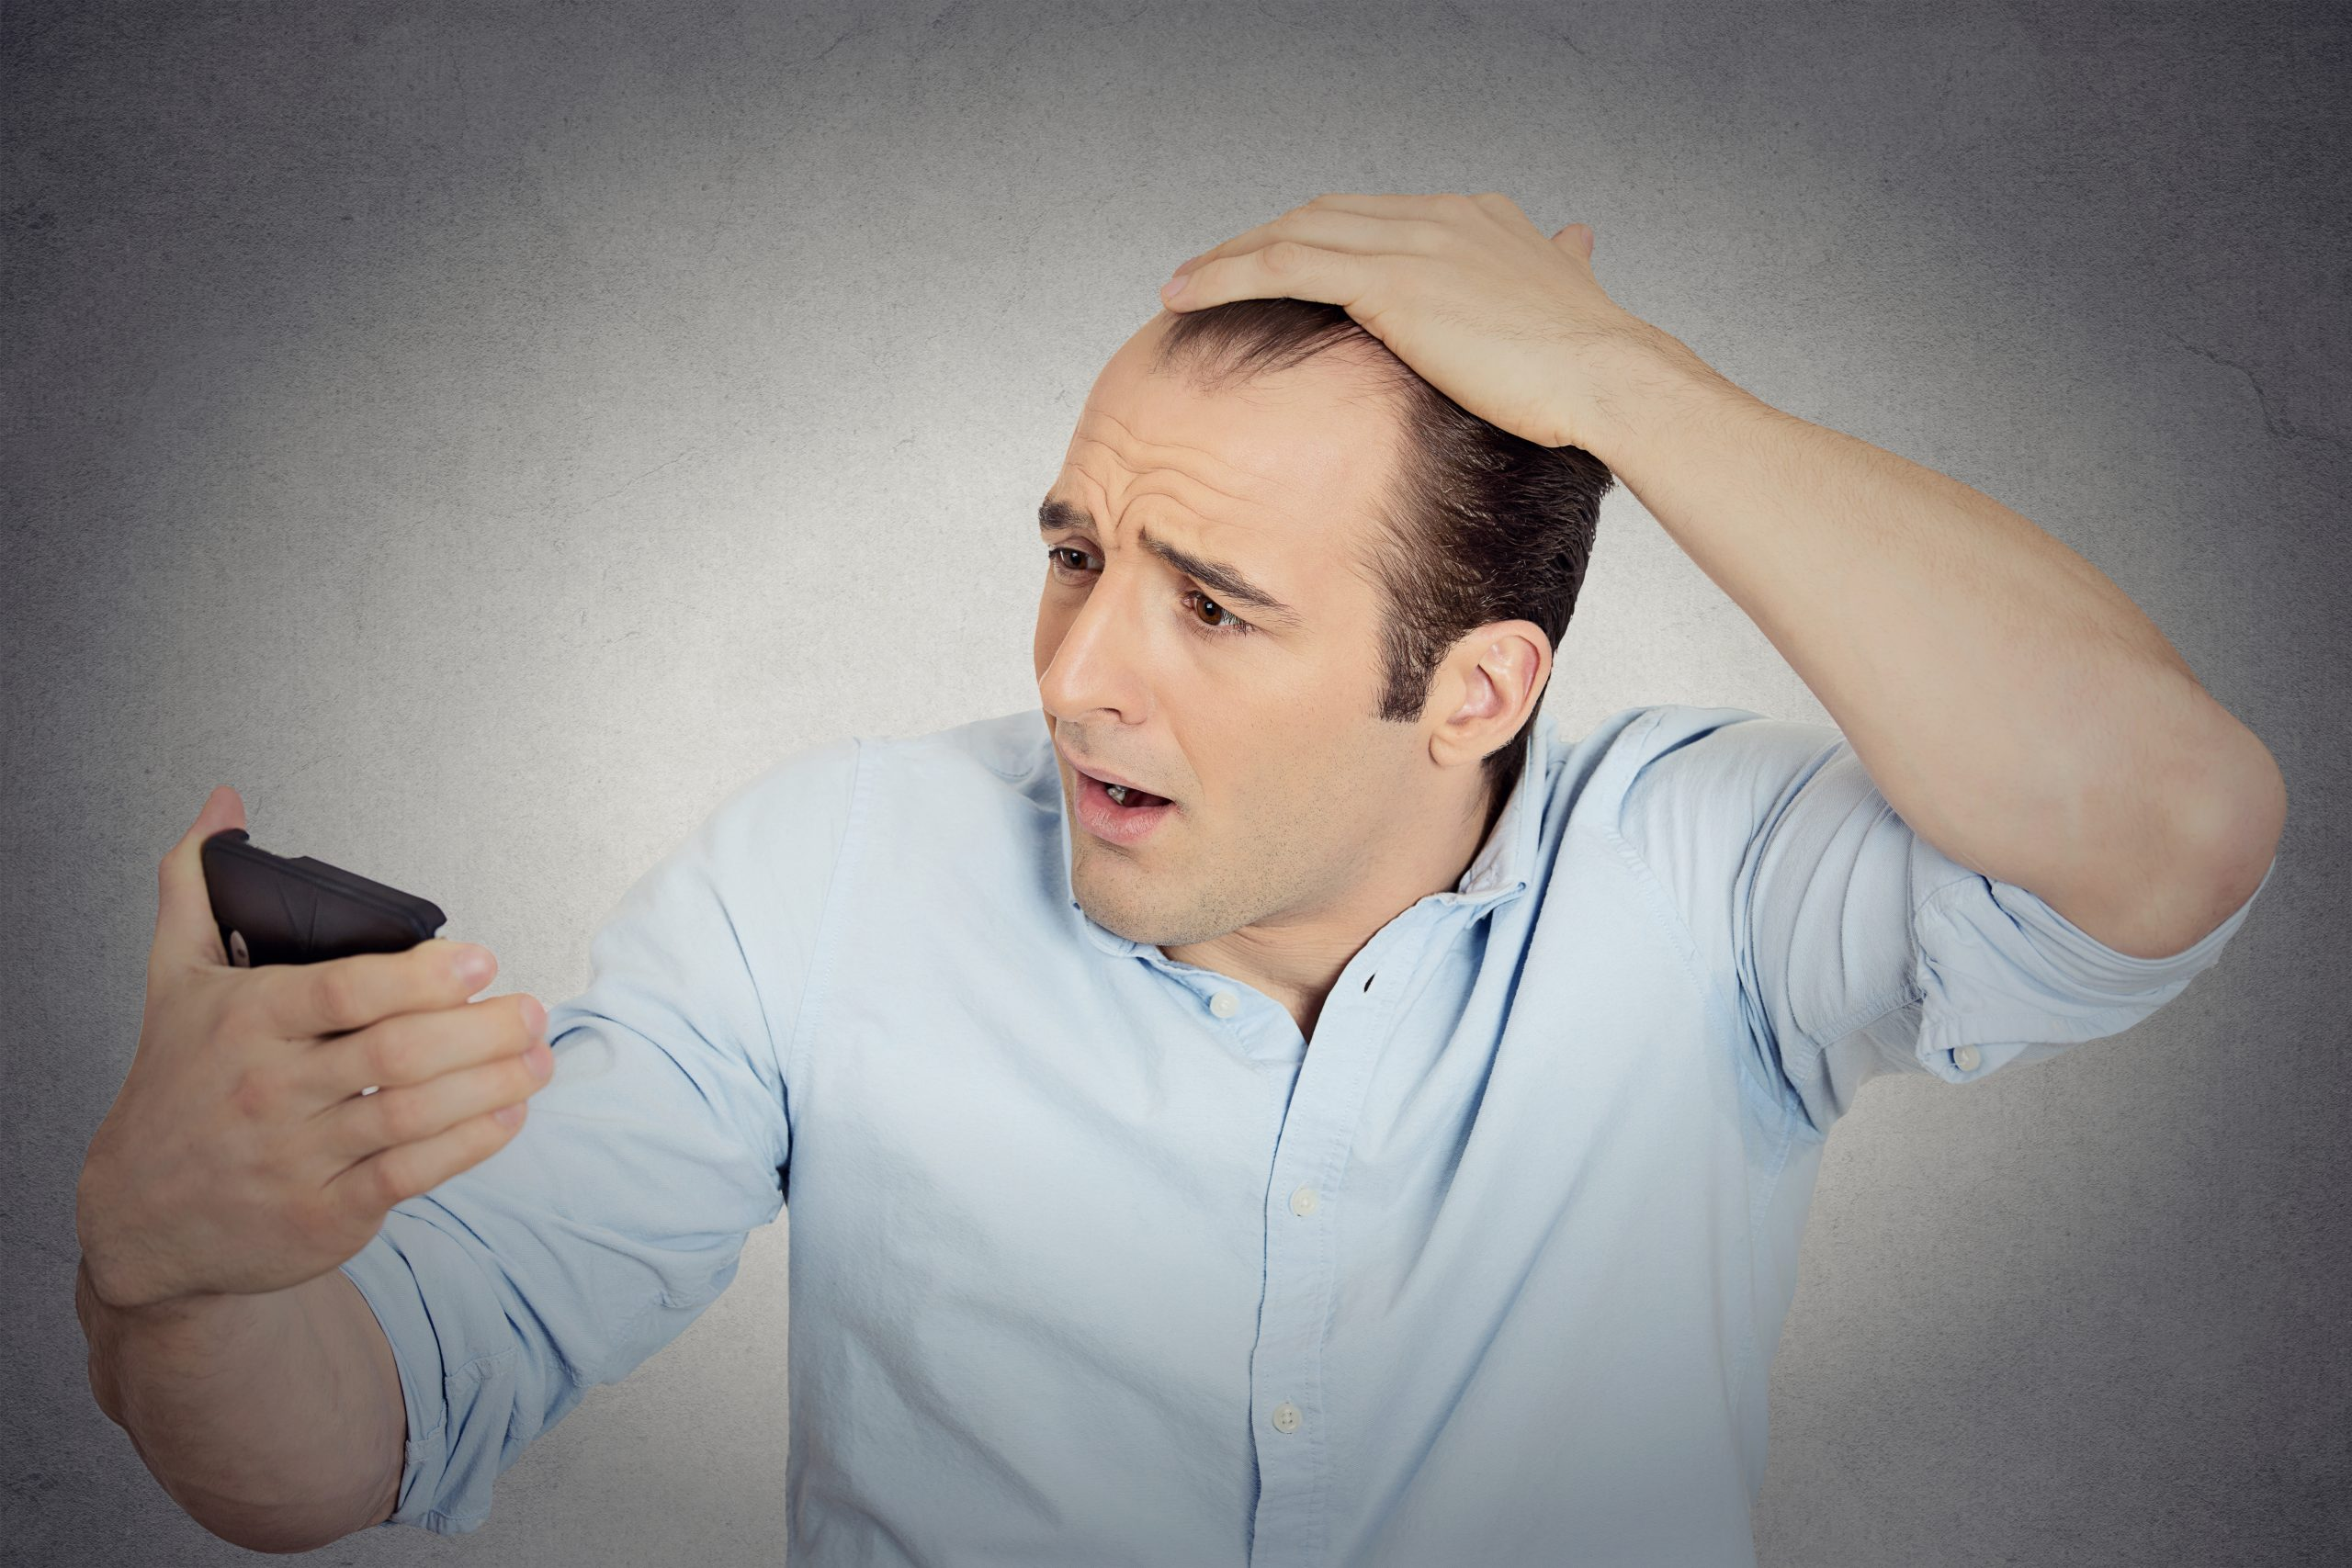 Struggling to grow hair causes more stress